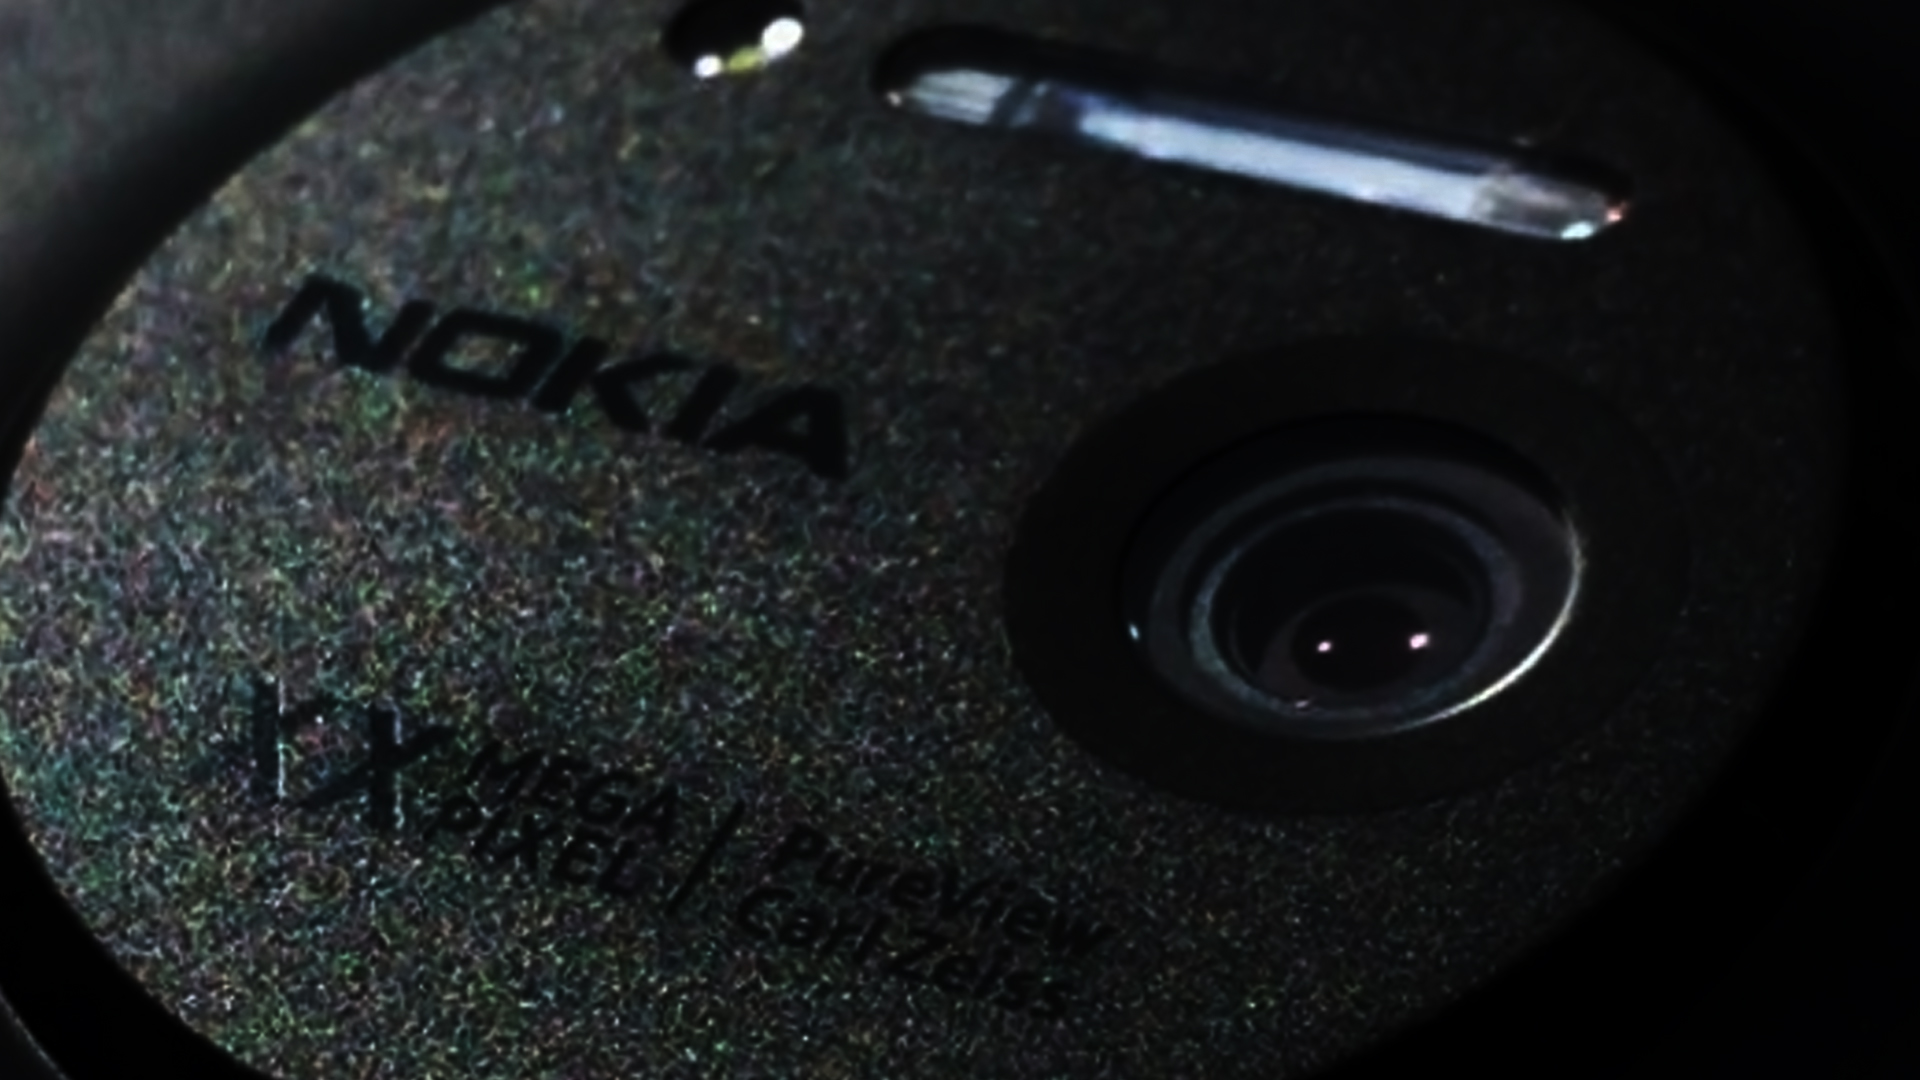 Nokia Lumia EOS 1020 Pureview Camera Shutter Video by renatofraccari